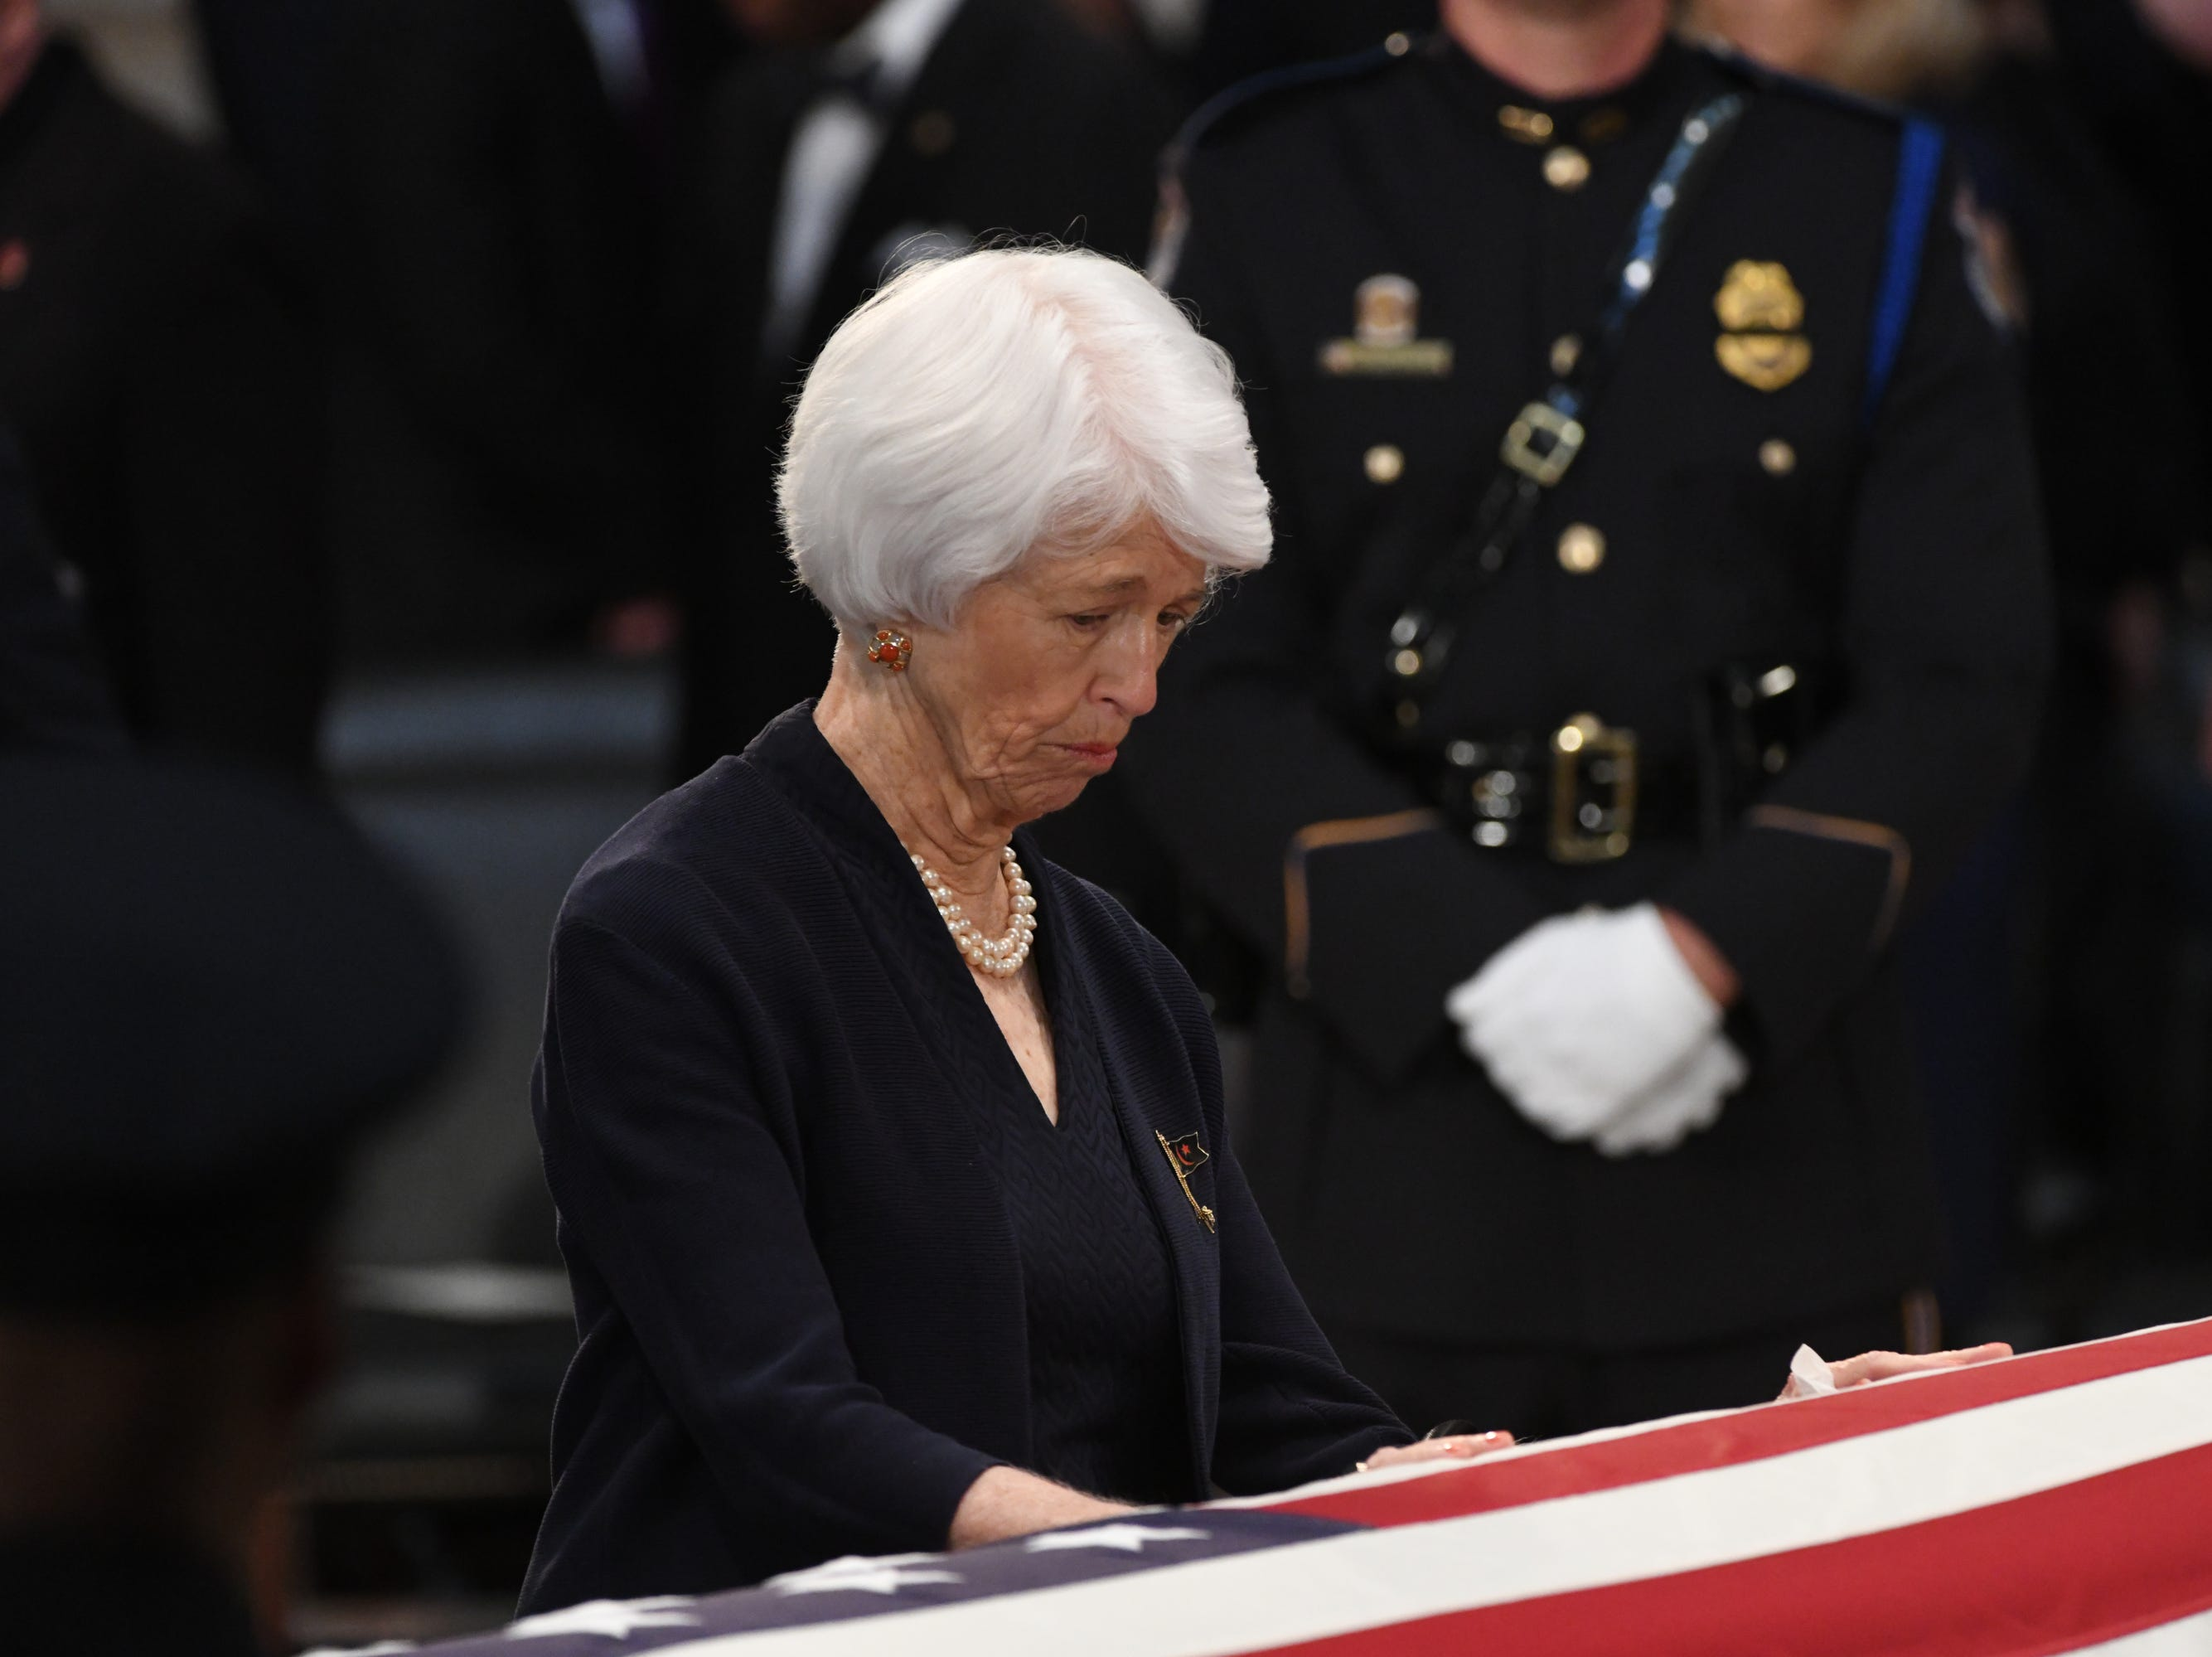 8/31/18 11:27:56 AM -- Washington, DC, U.S.A  -- The body of John McCain lies in state at the U.S. Capitol in Washington on Aug. 31, 2018 in Washington. Sen. McCain died on Aug. 25. --    Photo by Jasper Colt, USA TODAY Staff